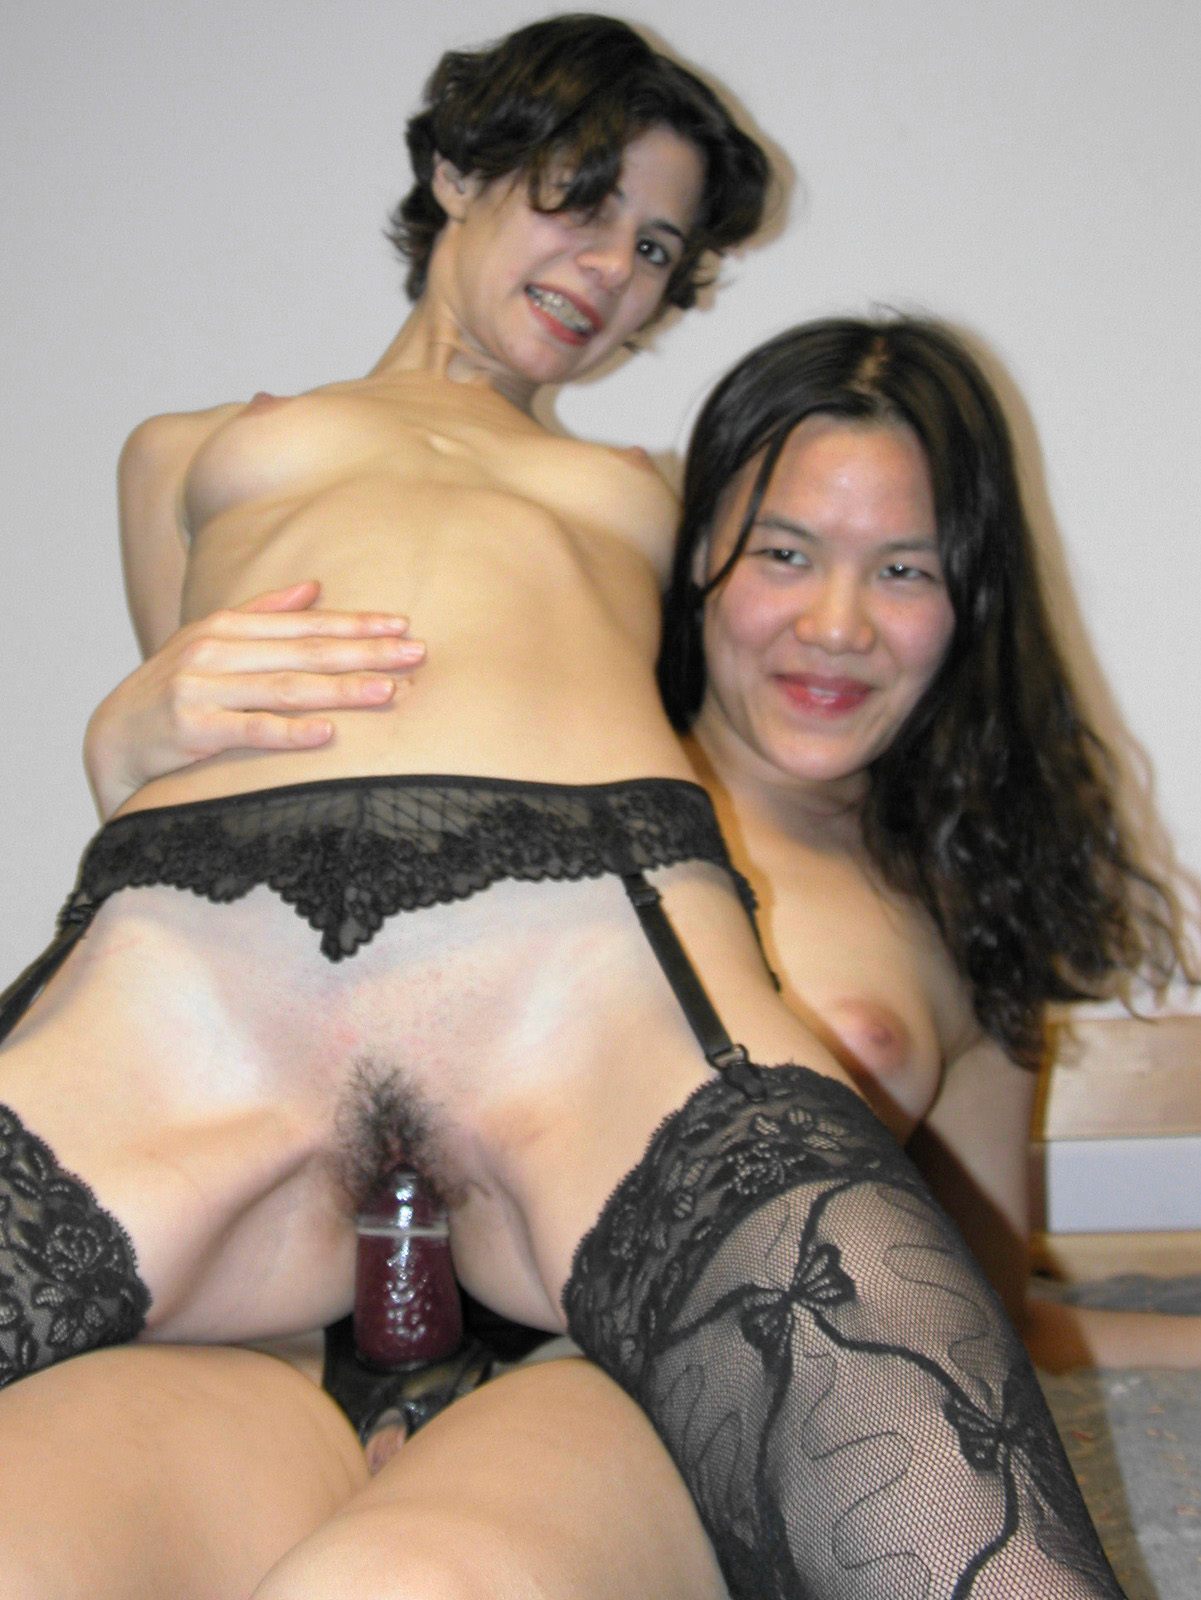 Skinny lesbian amateur brunette in black stockings gets her tight pussy  strapon fucked